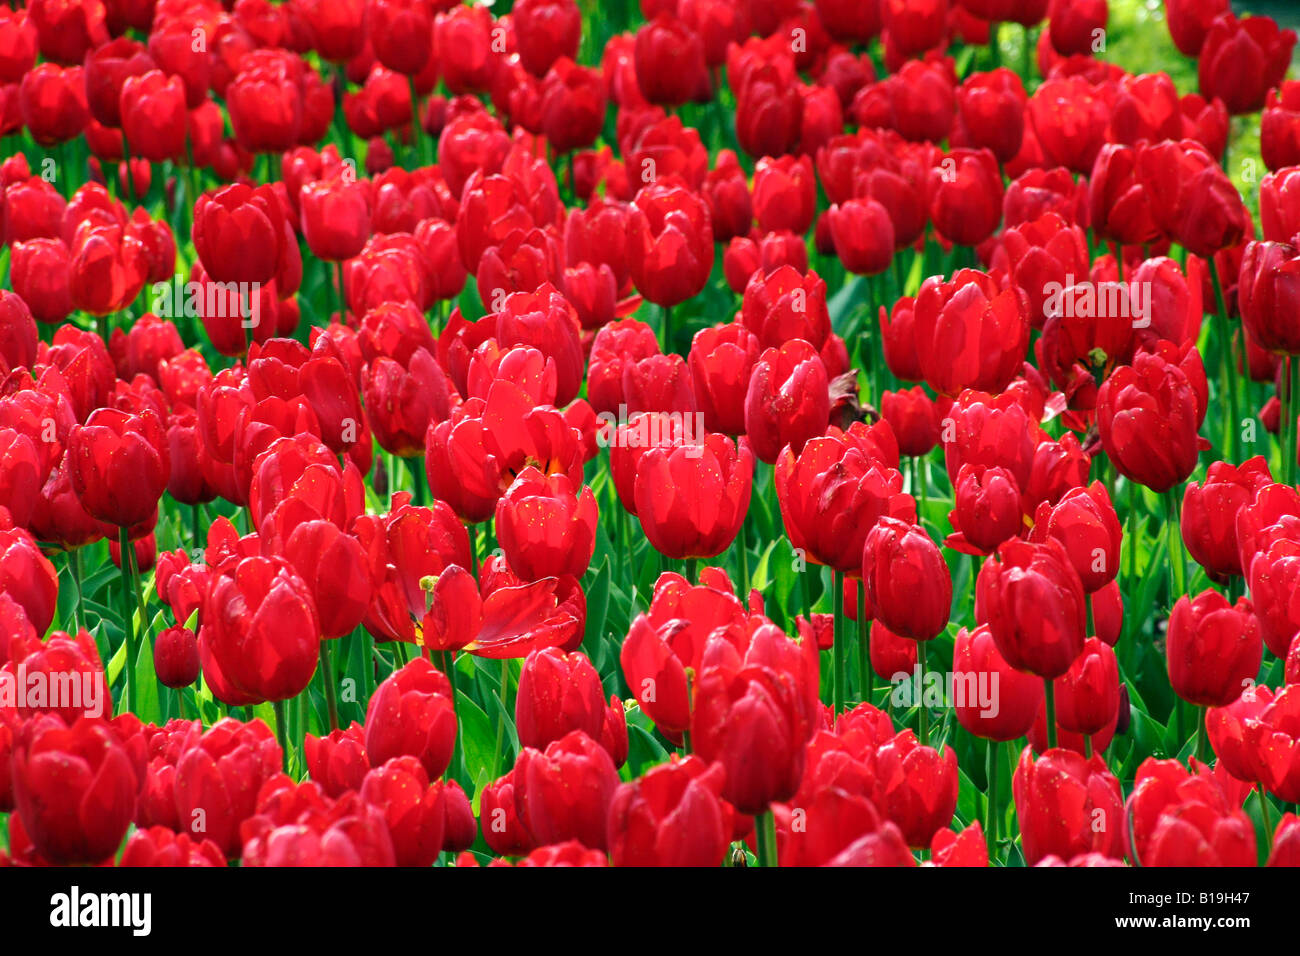 Spain, Madrid. Flowers in the Public Realm. - Stock Image